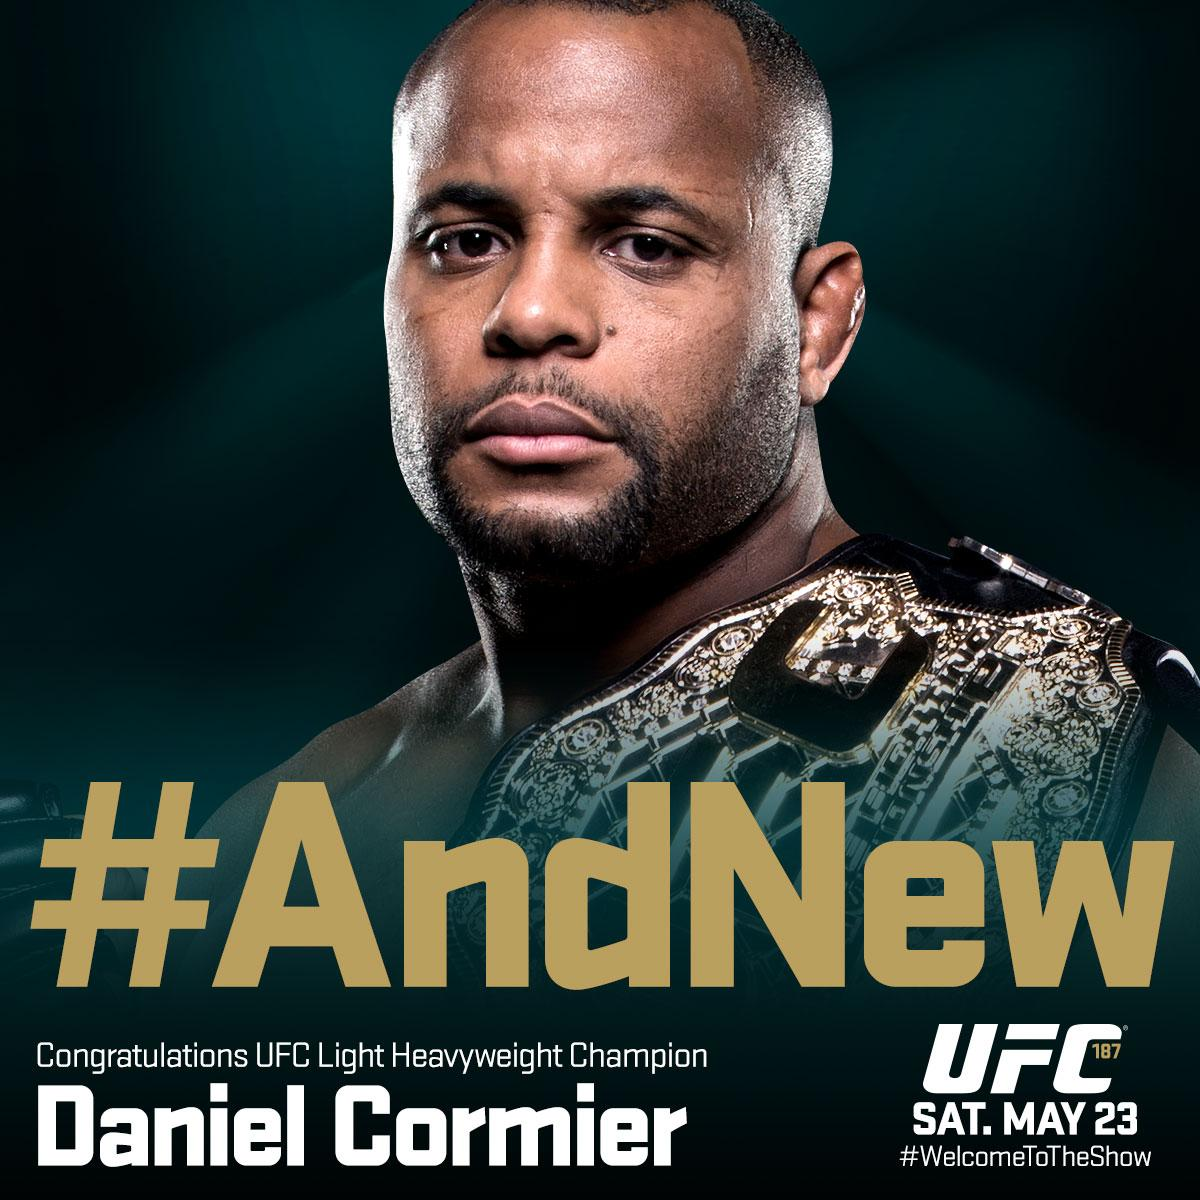 Congrats Champ!  RT @ufc: #AndNew UFC light heavyweight champion of the world @DC_MMA! #UFC187 http://t.co/Wky8A5LZgL